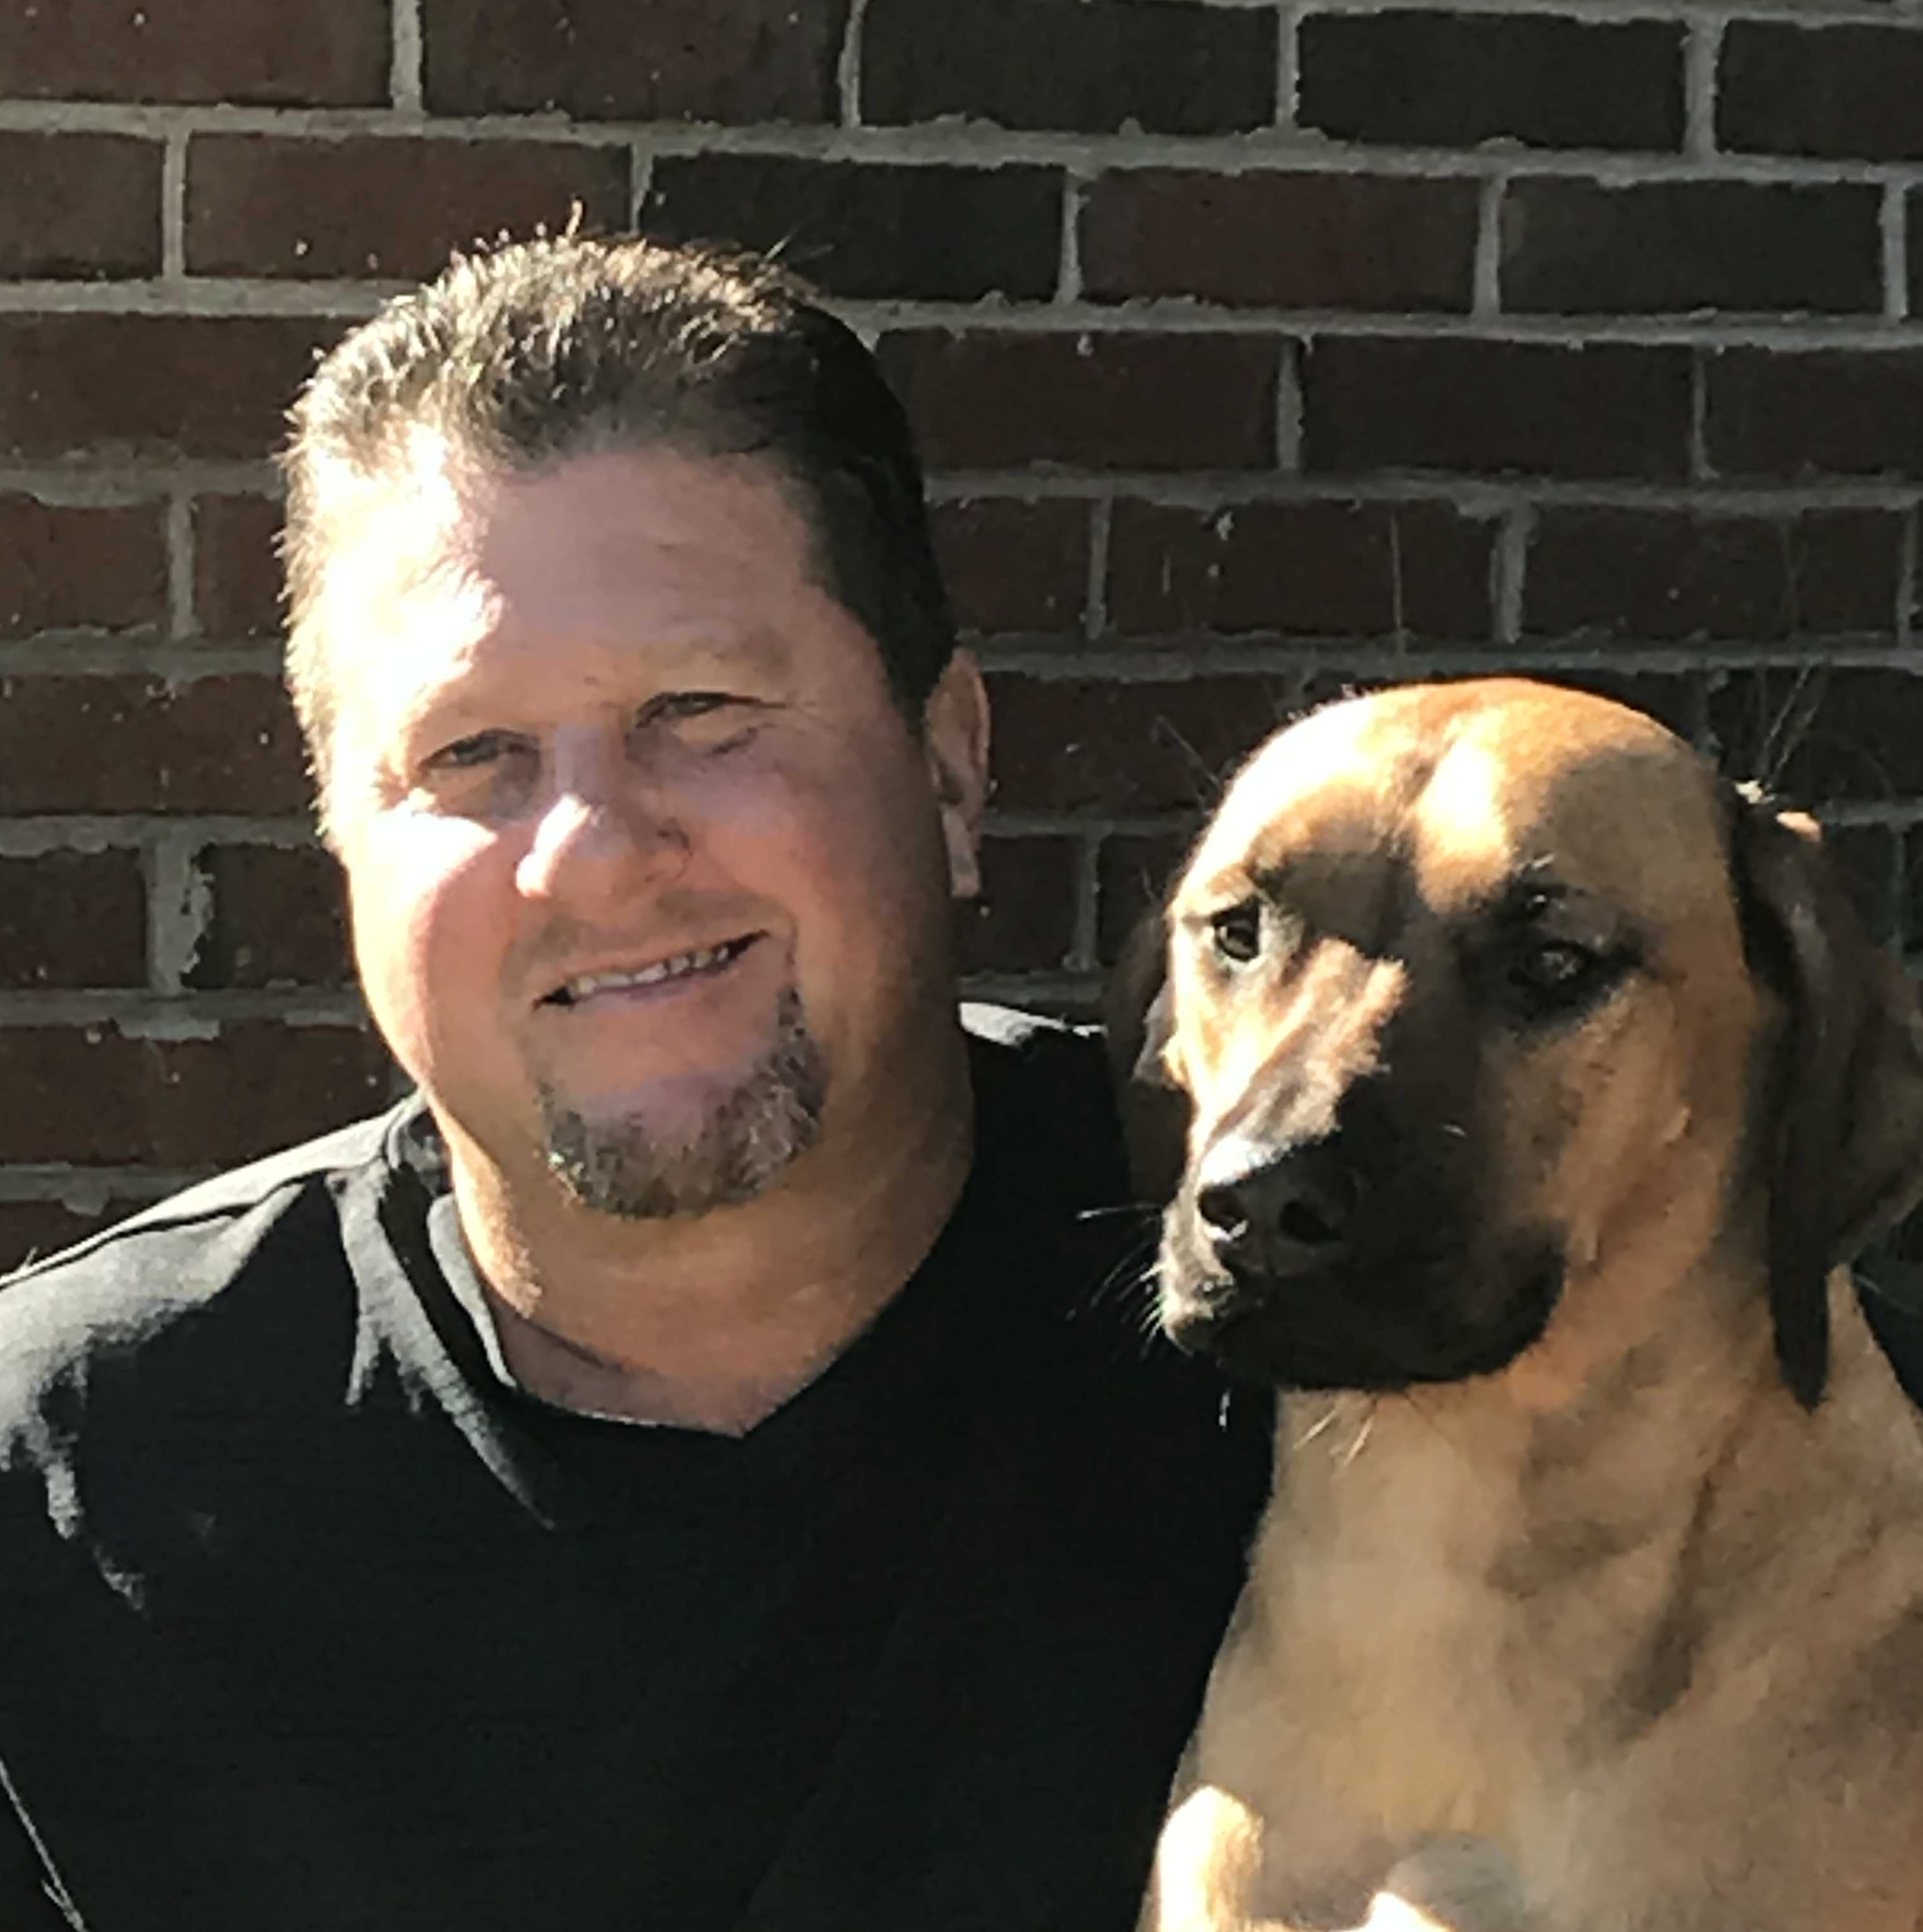 Drainage First owner with dog in Atlanta